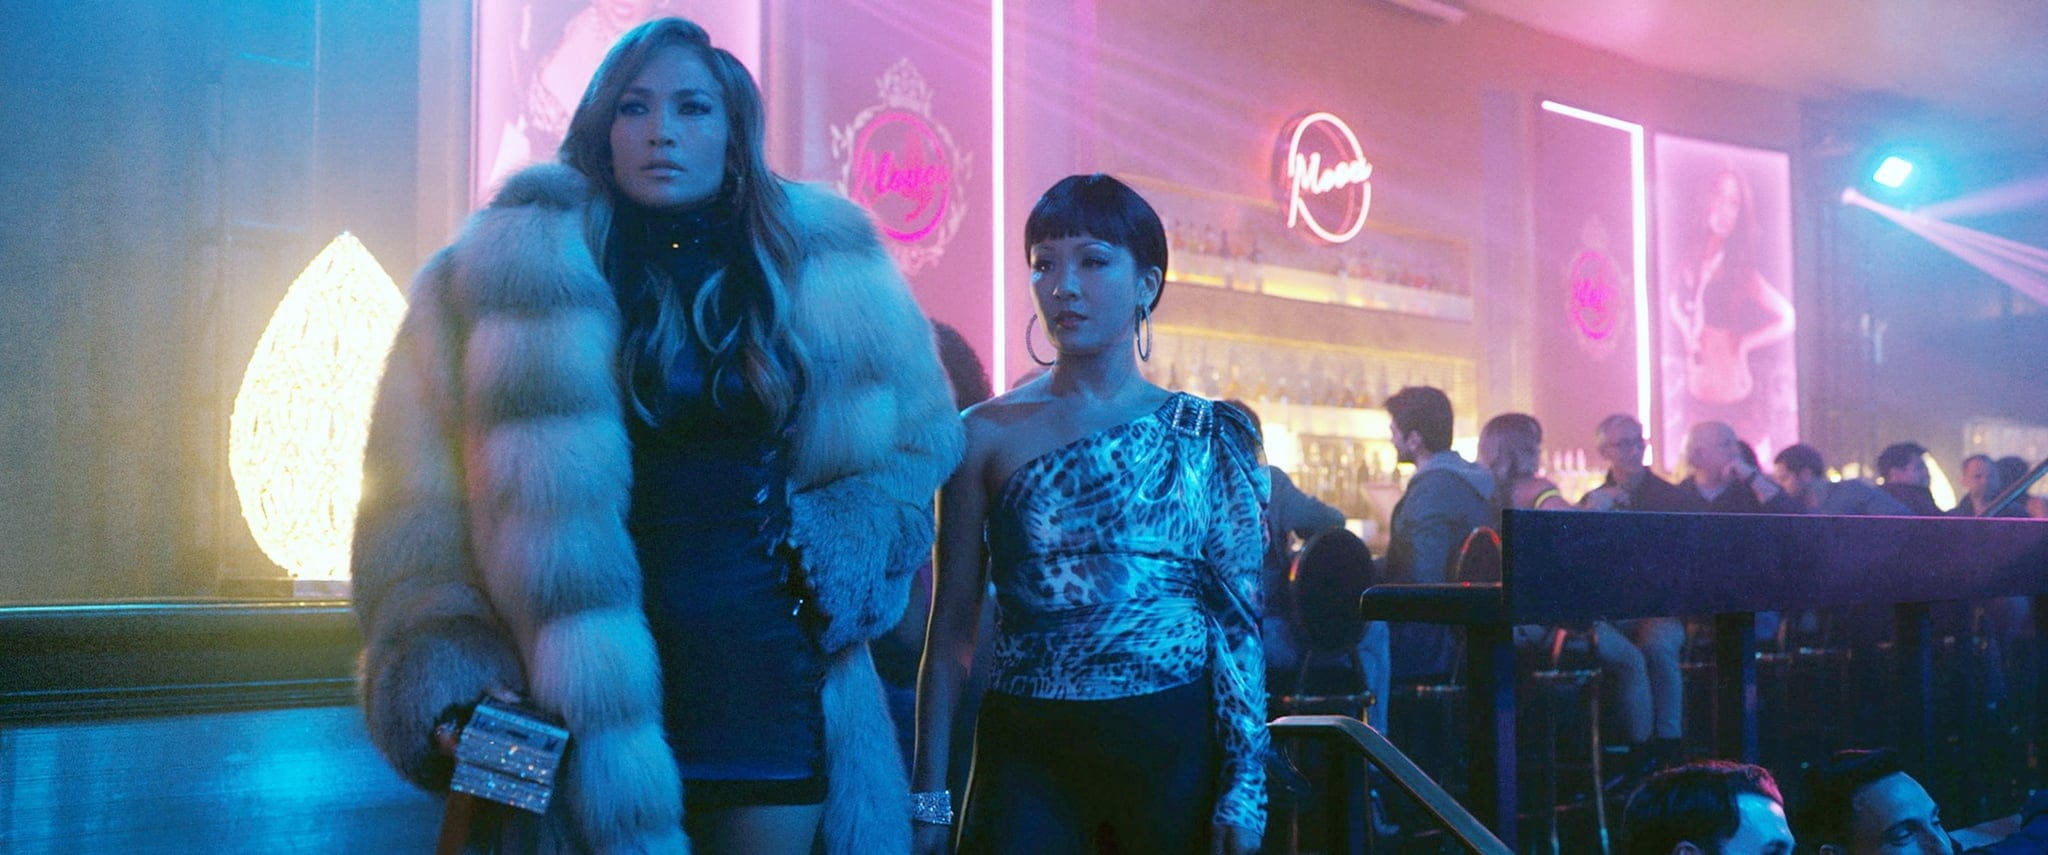 Jennifer Lopez's Latest Movie Hustlers